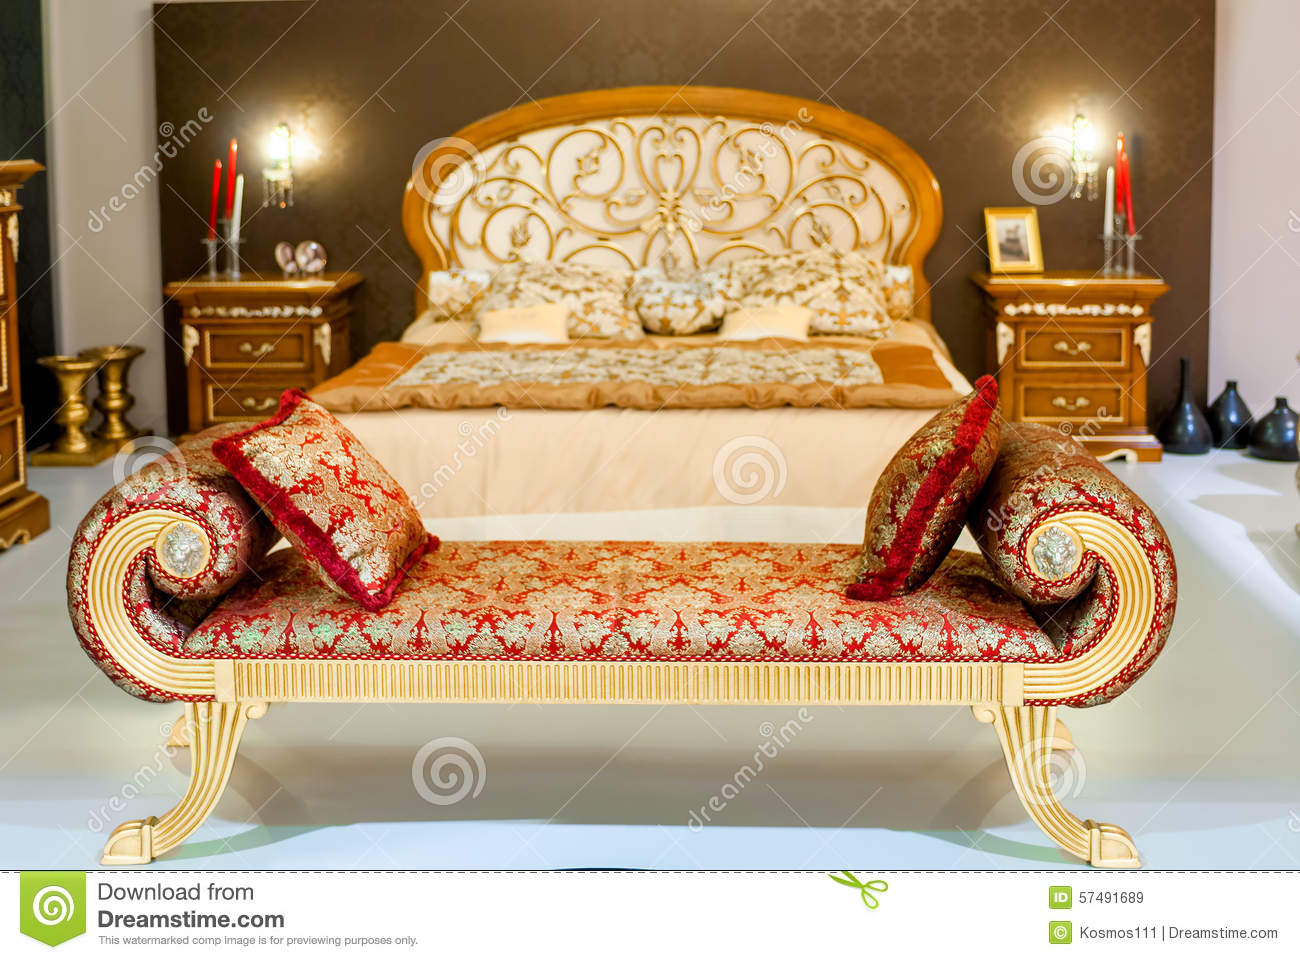 meubles luxueux dans une chambre coucher photo stock image 57491689. Black Bedroom Furniture Sets. Home Design Ideas